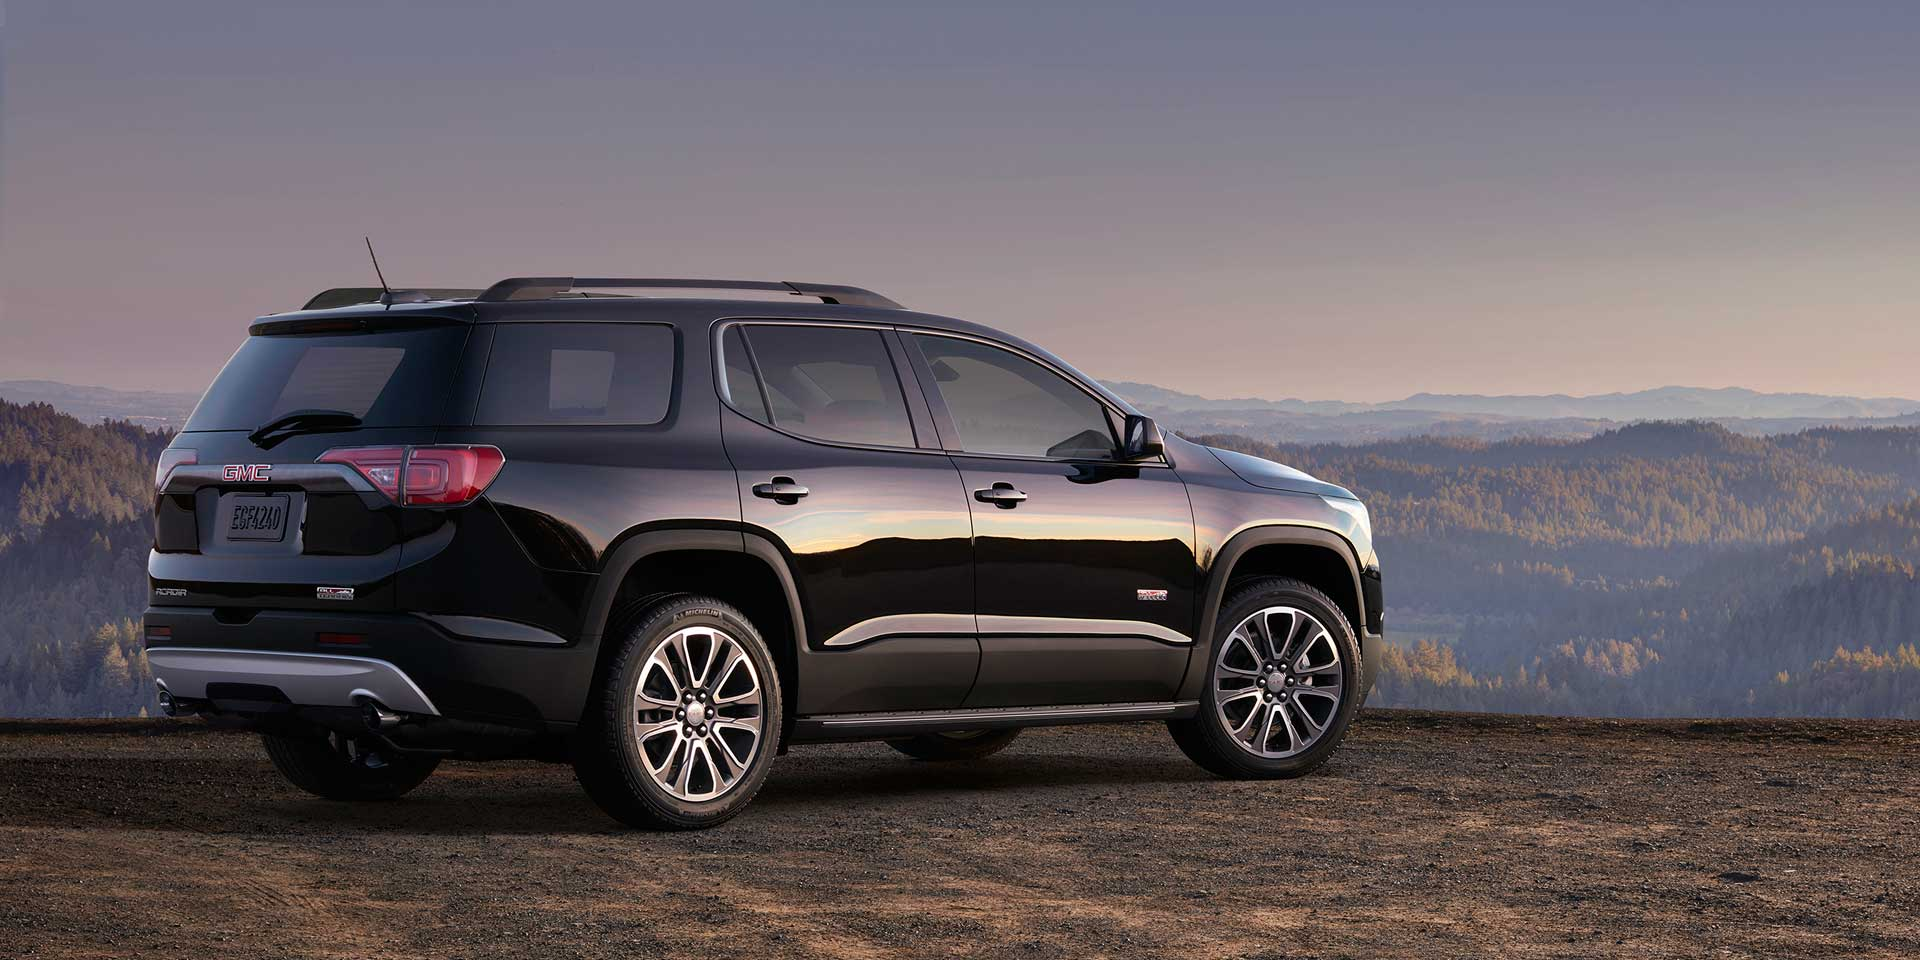 2015 gmc acadia review ratings specs prices and photos autos post. Black Bedroom Furniture Sets. Home Design Ideas